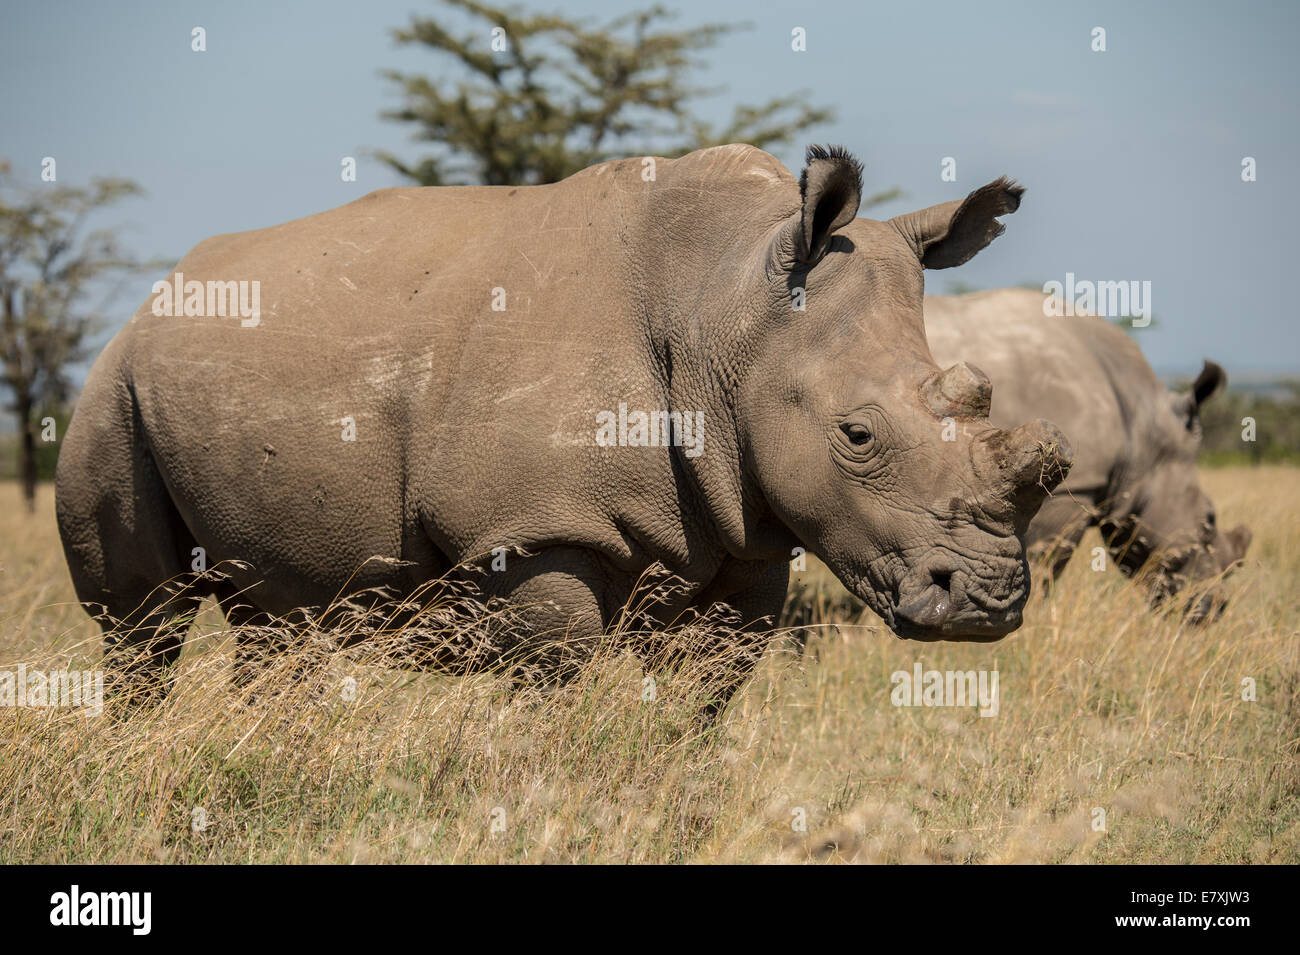 Fatu, (with sawed off horn) socializes with southern white rhinos at Ol Pejeta Nature Conservancy in Kenya. She - Stock Image